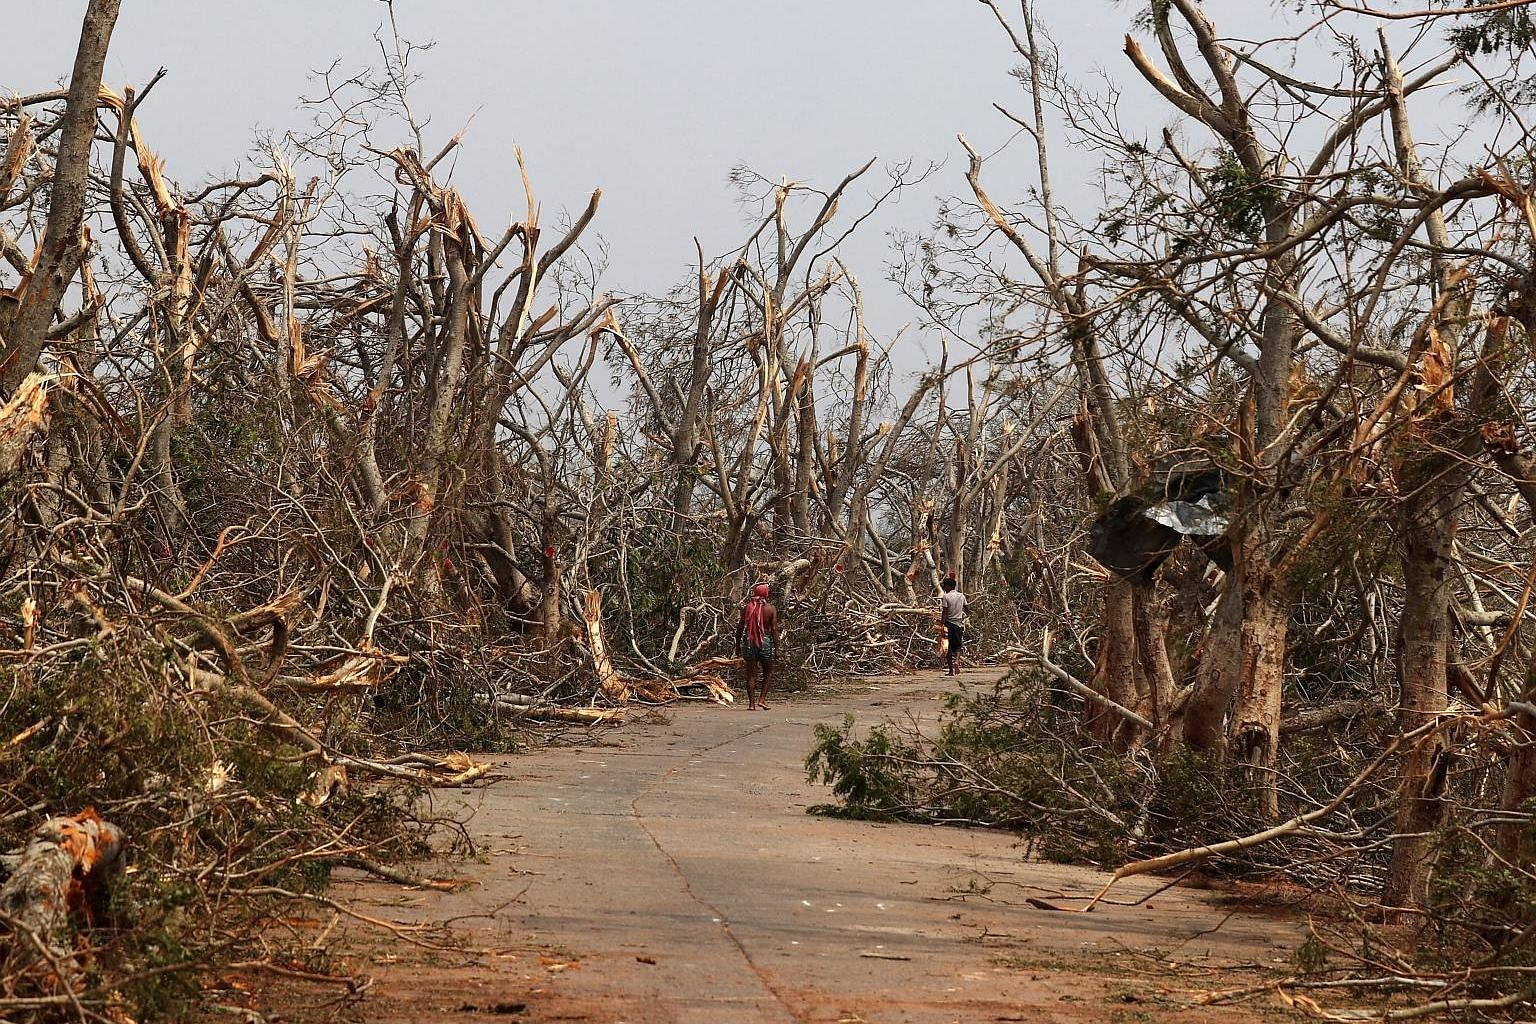 Trees in the Puri district of India's eastern state of Odisha with their branches snapped and leaves torn off in the aftermath of Cyclone Fani last Saturday. The fierce storm left a trail of damage in eastern India and Bangladesh. At least 33 people